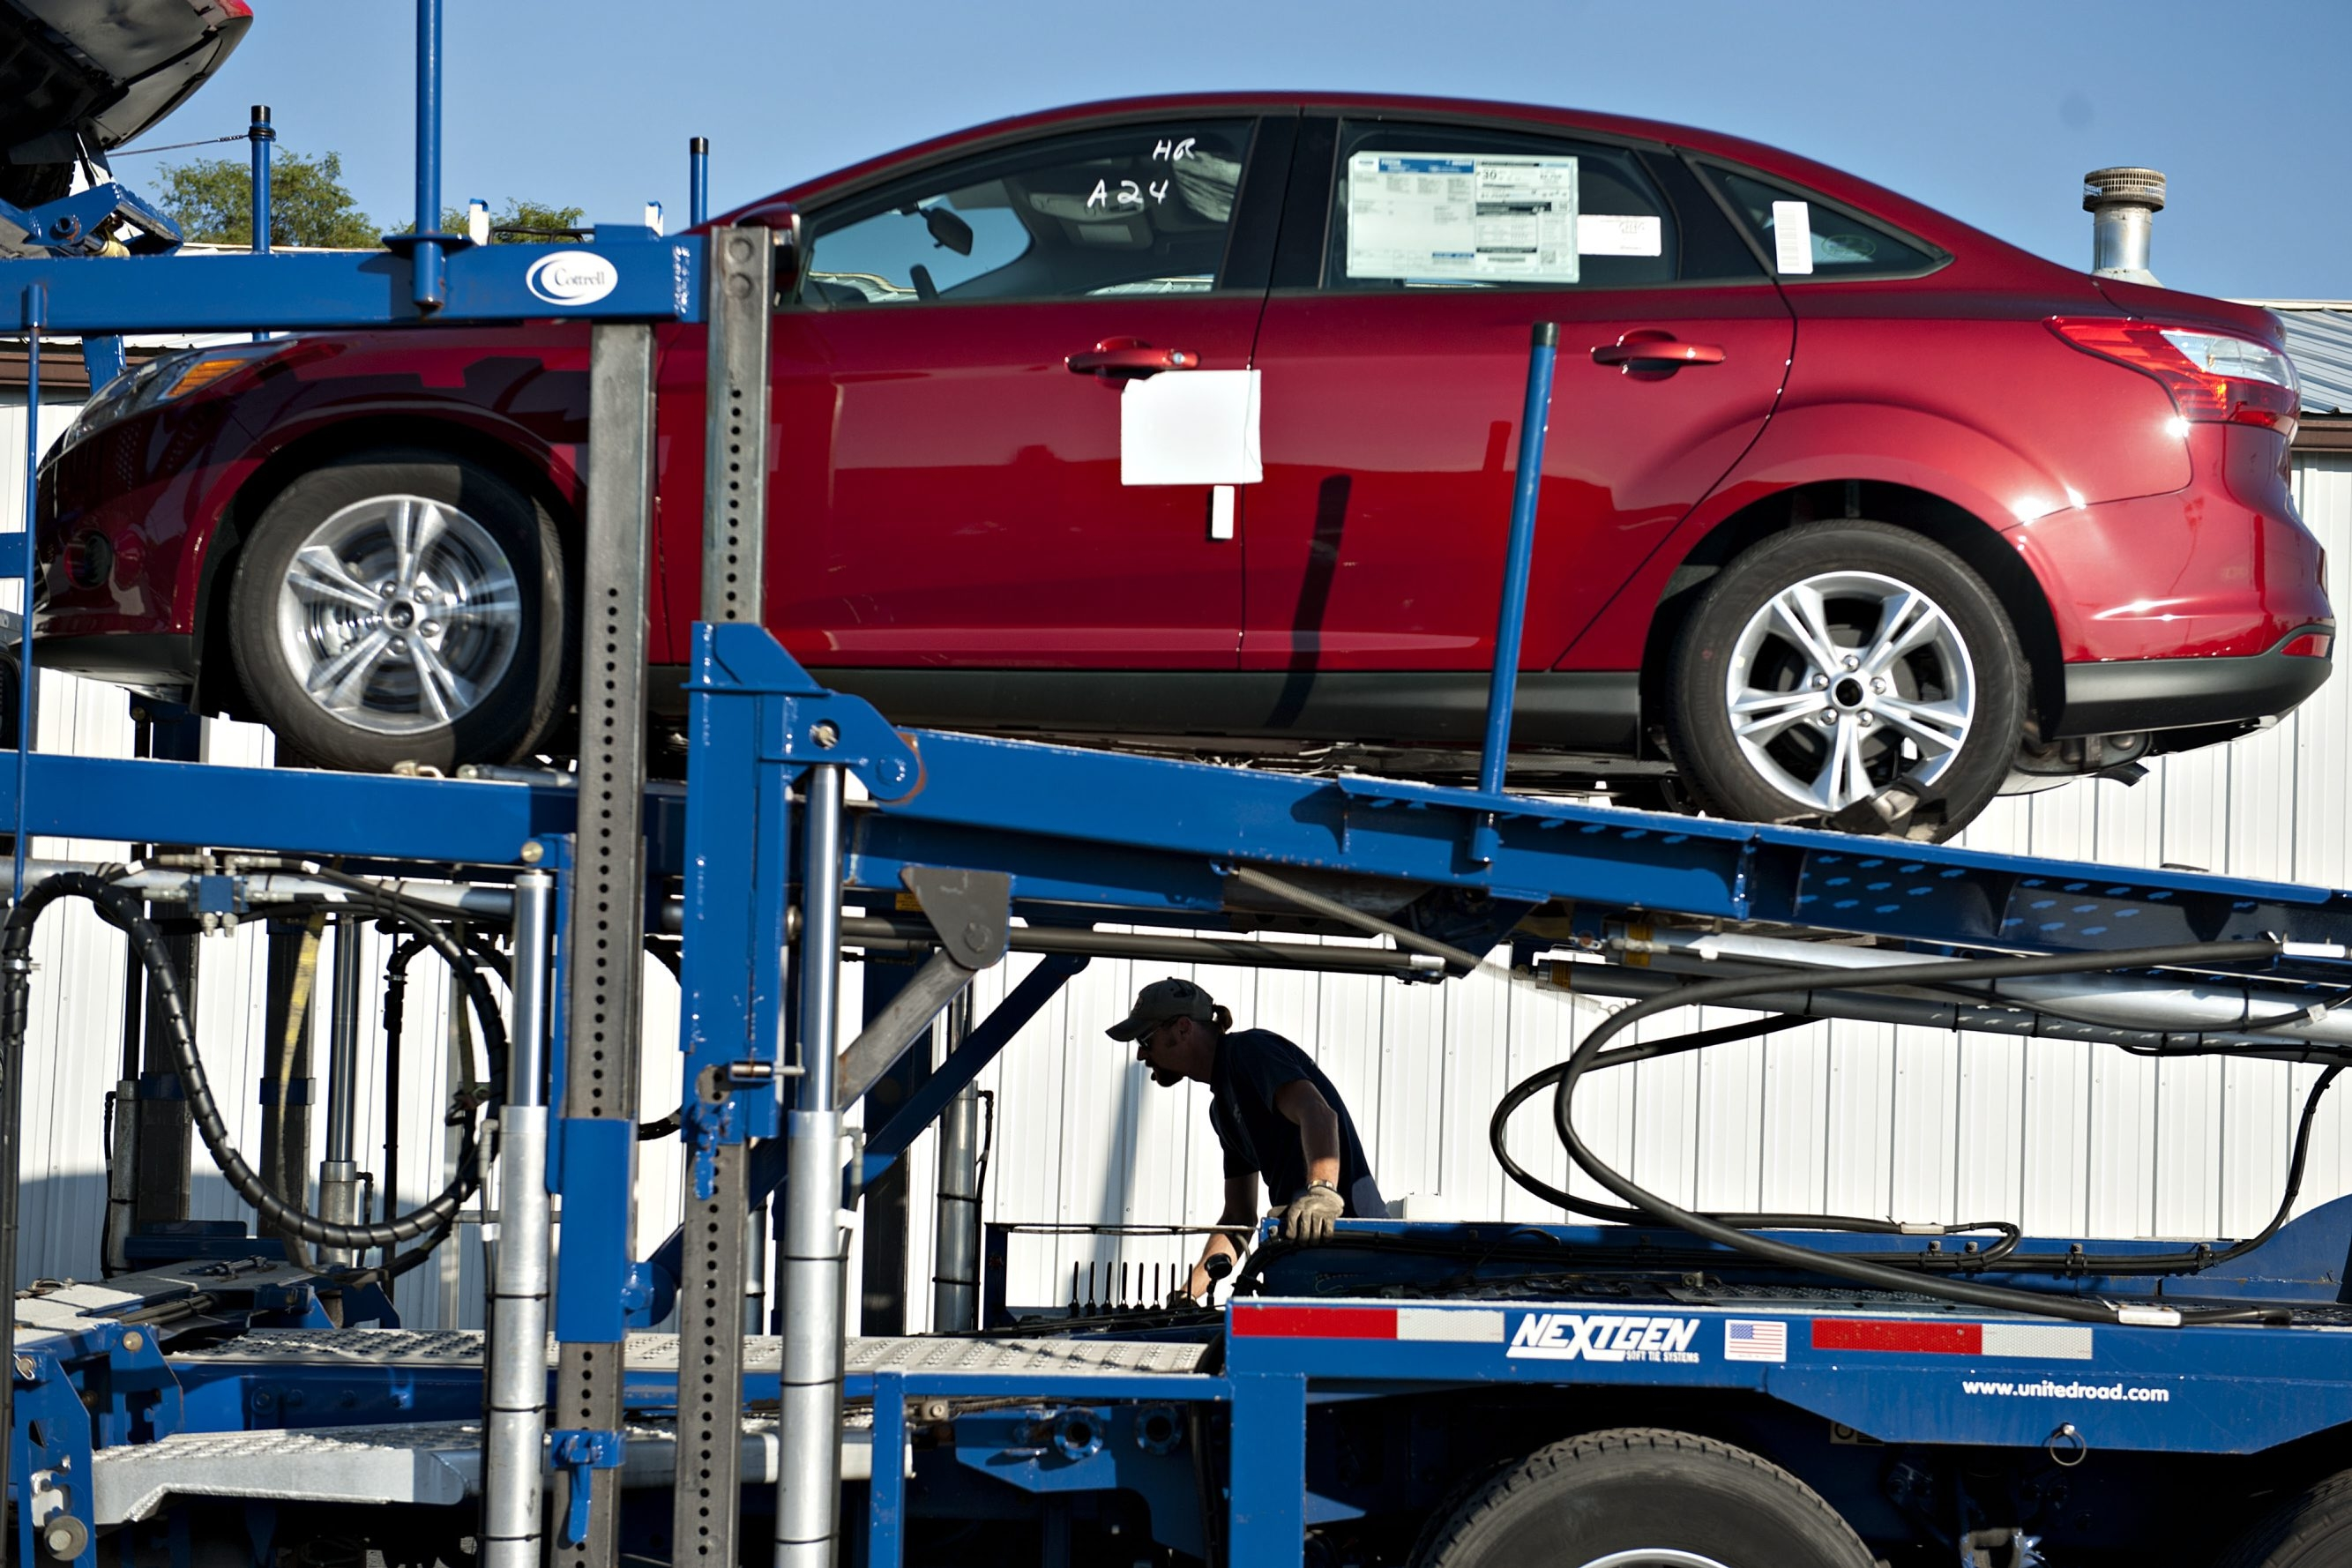 Automakers like Ford and Toyota are working to ensure their supply chain runs as efficiently as possible in order to avoid wasted time and cost.